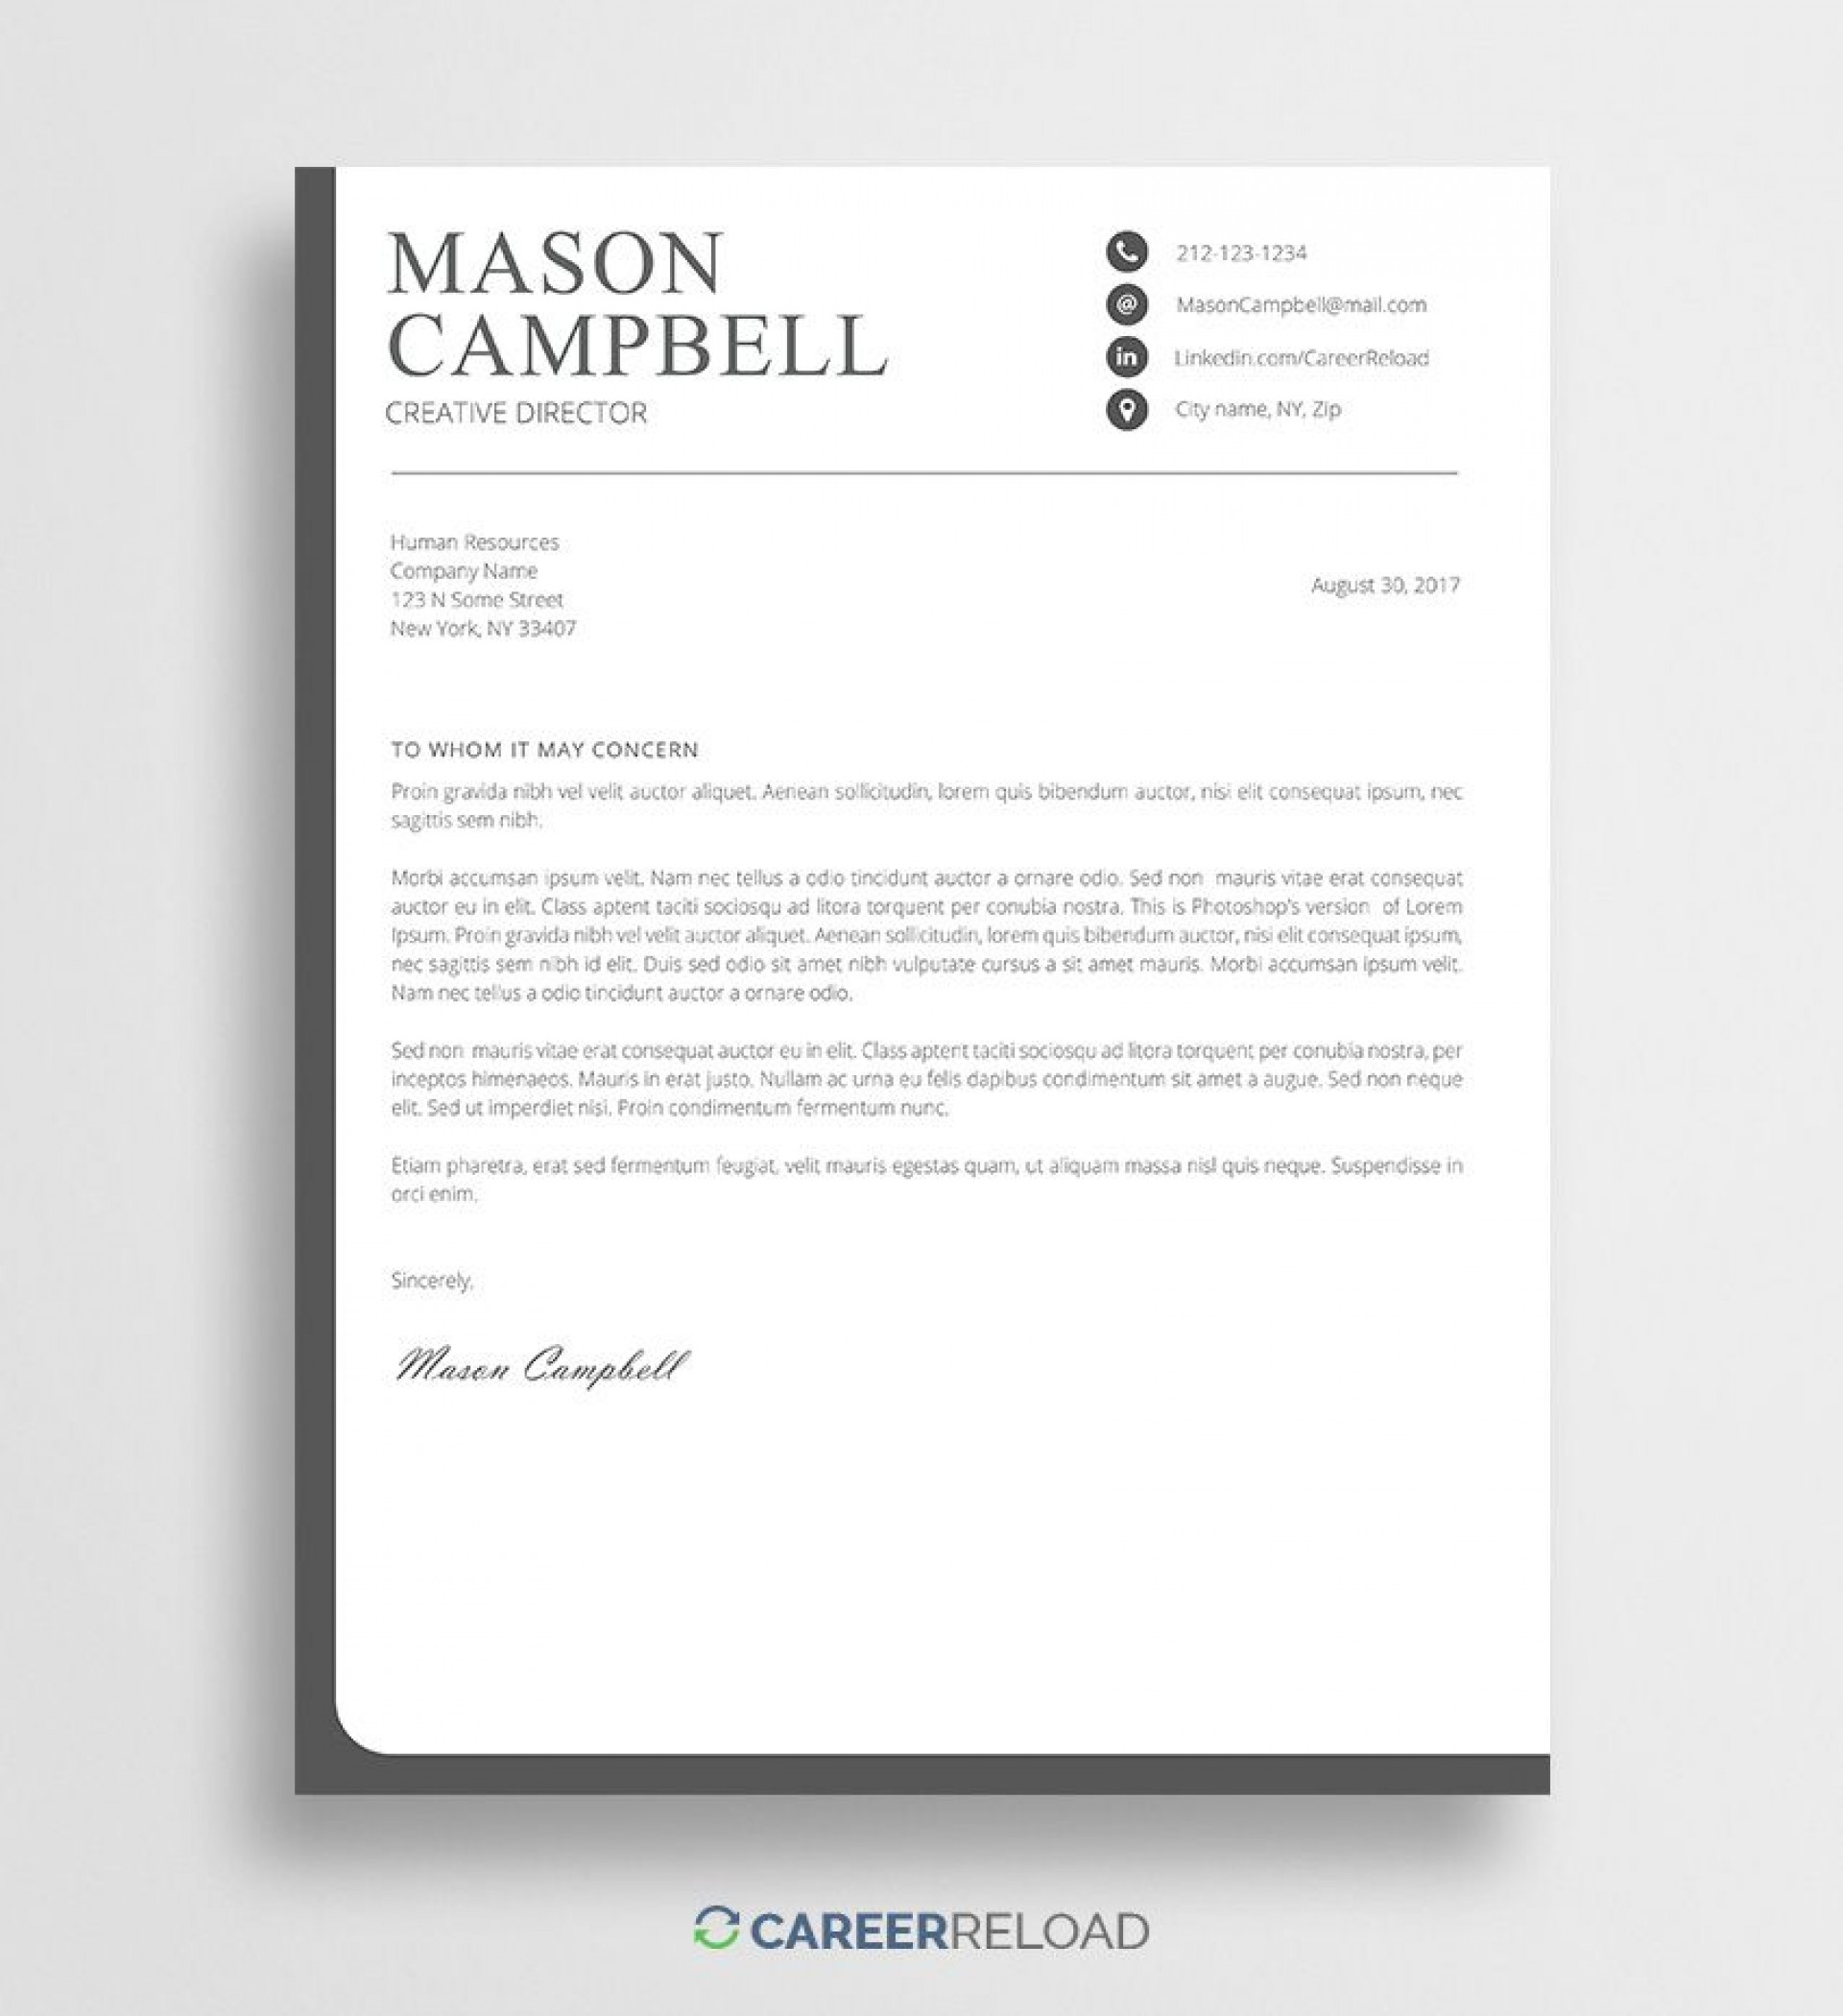 003 Best Download Cover Letter Template High Resolution  Templates Free Microsoft Word1920